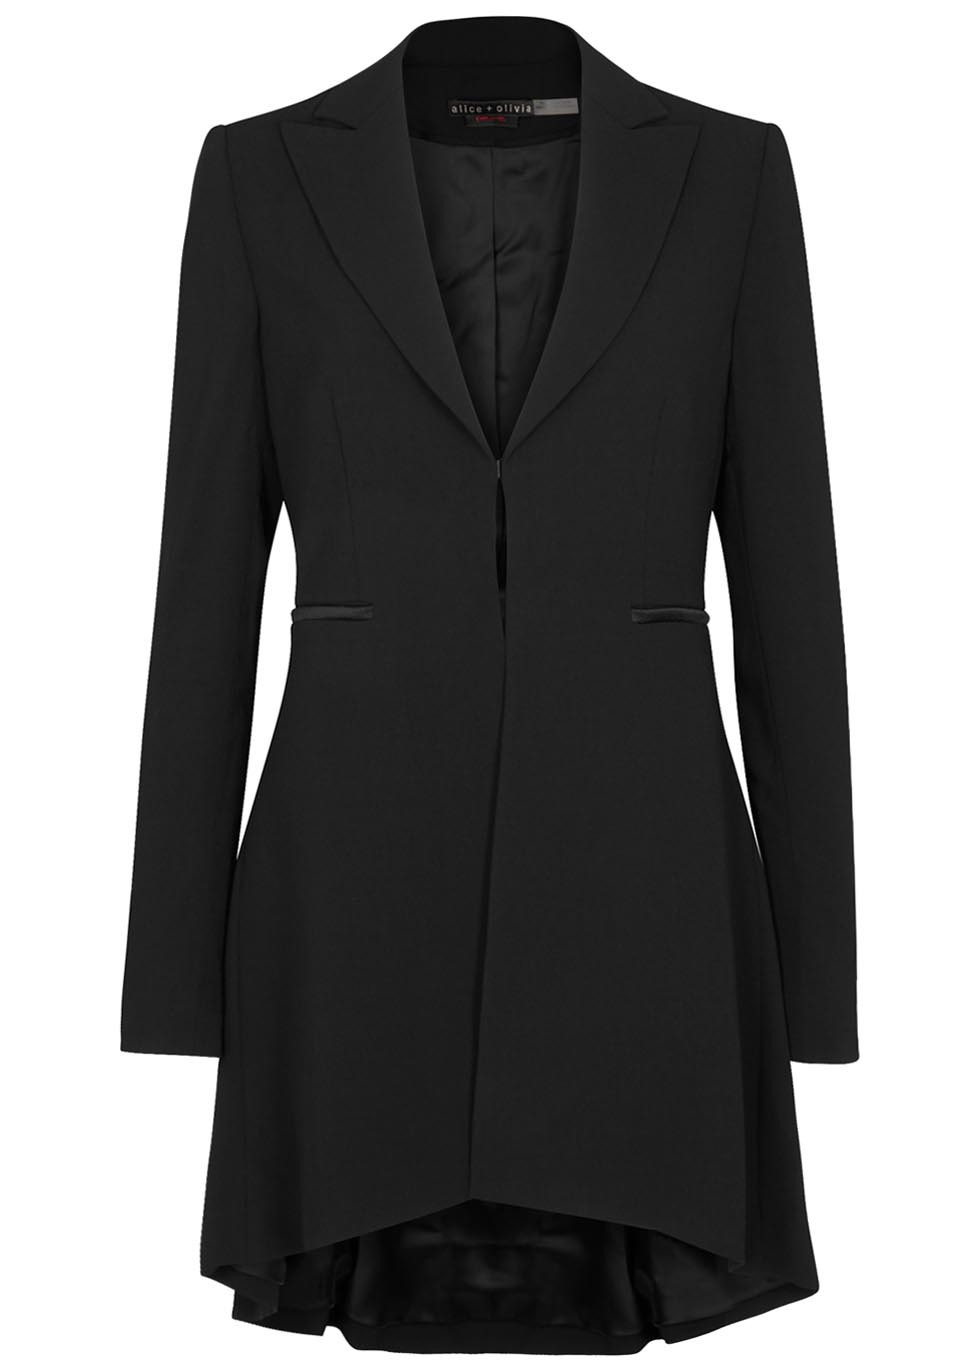 Jordyn Black Pleat Back Blazer - pattern: plain; style: single breasted blazer; collar: standard lapel/rever collar; predominant colour: black; occasions: evening, occasion, creative work; fit: tailored/fitted; fibres: polyester/polyamide - 100%; length: mid thigh; sleeve length: long sleeve; sleeve style: standard; texture group: crepes; collar break: medium; pattern type: fabric; season: s/s 2016; wardrobe: investment